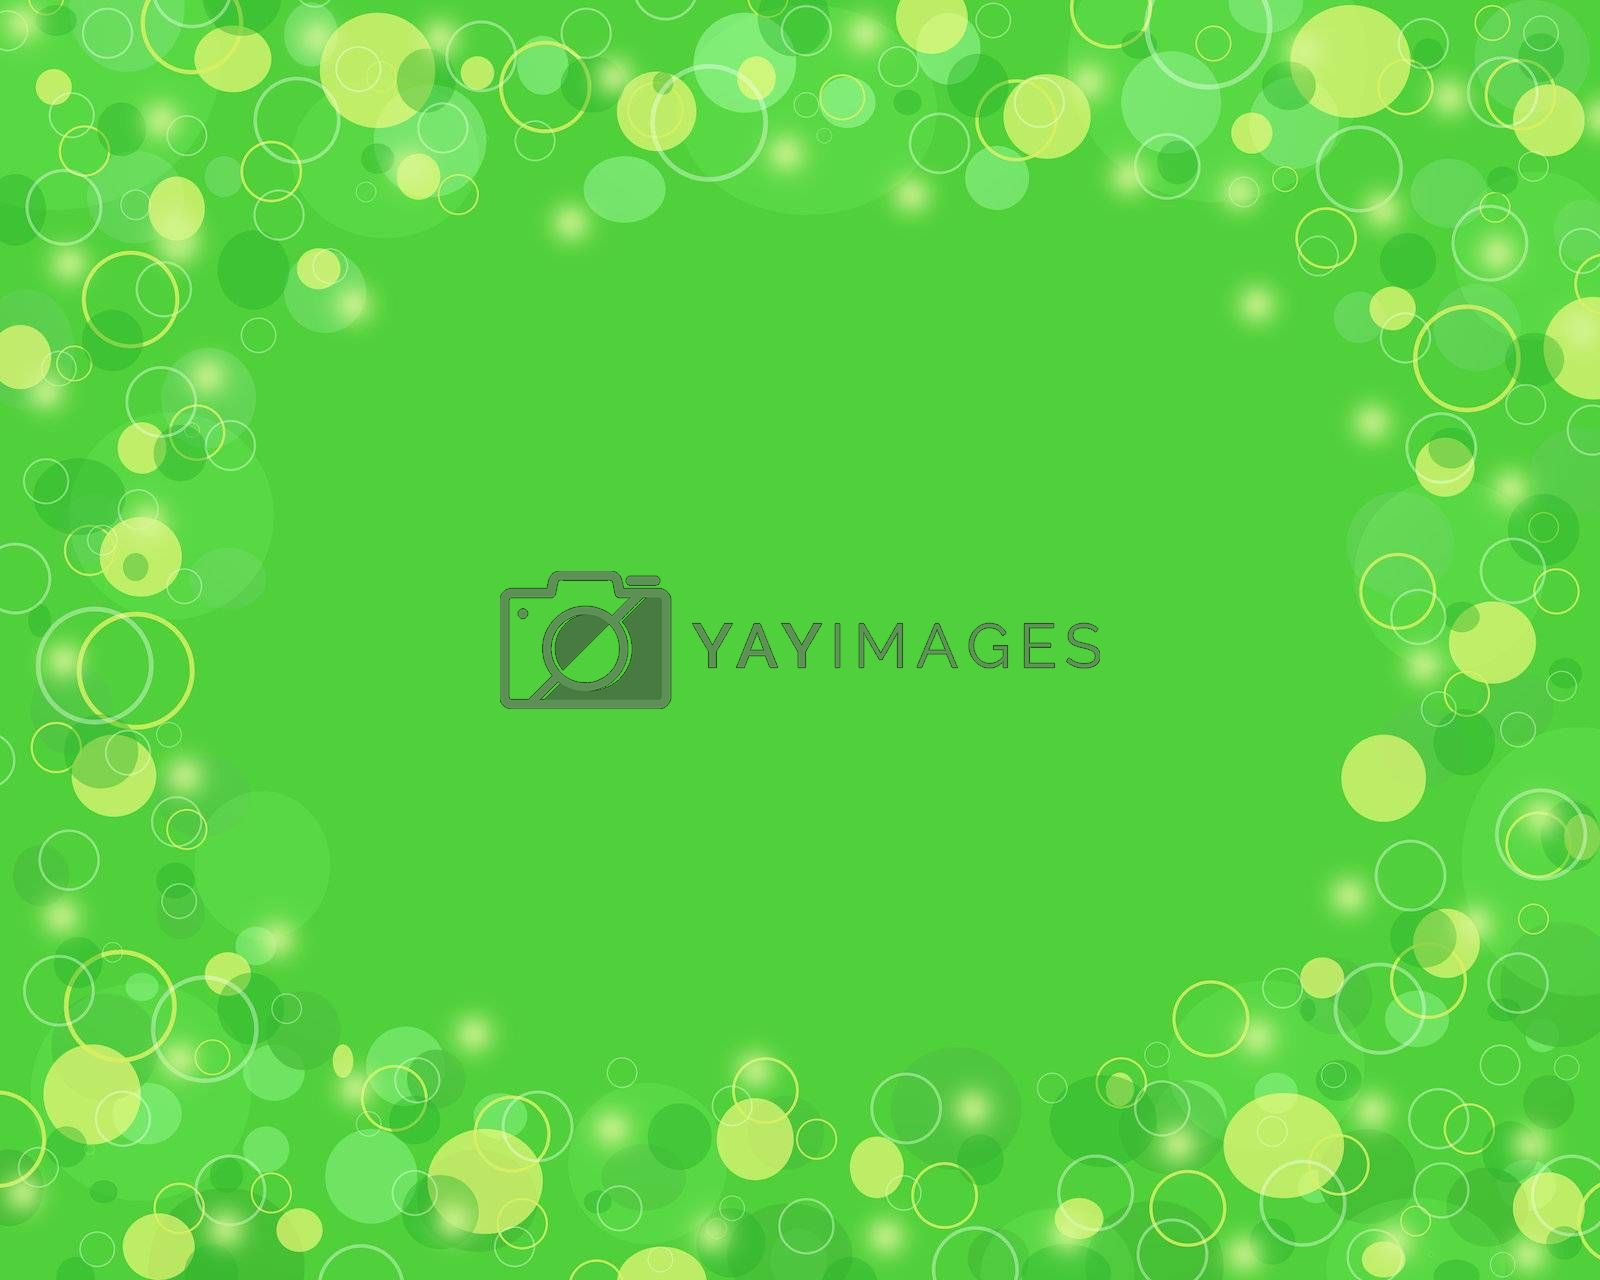 Abstract green and yellow circle background